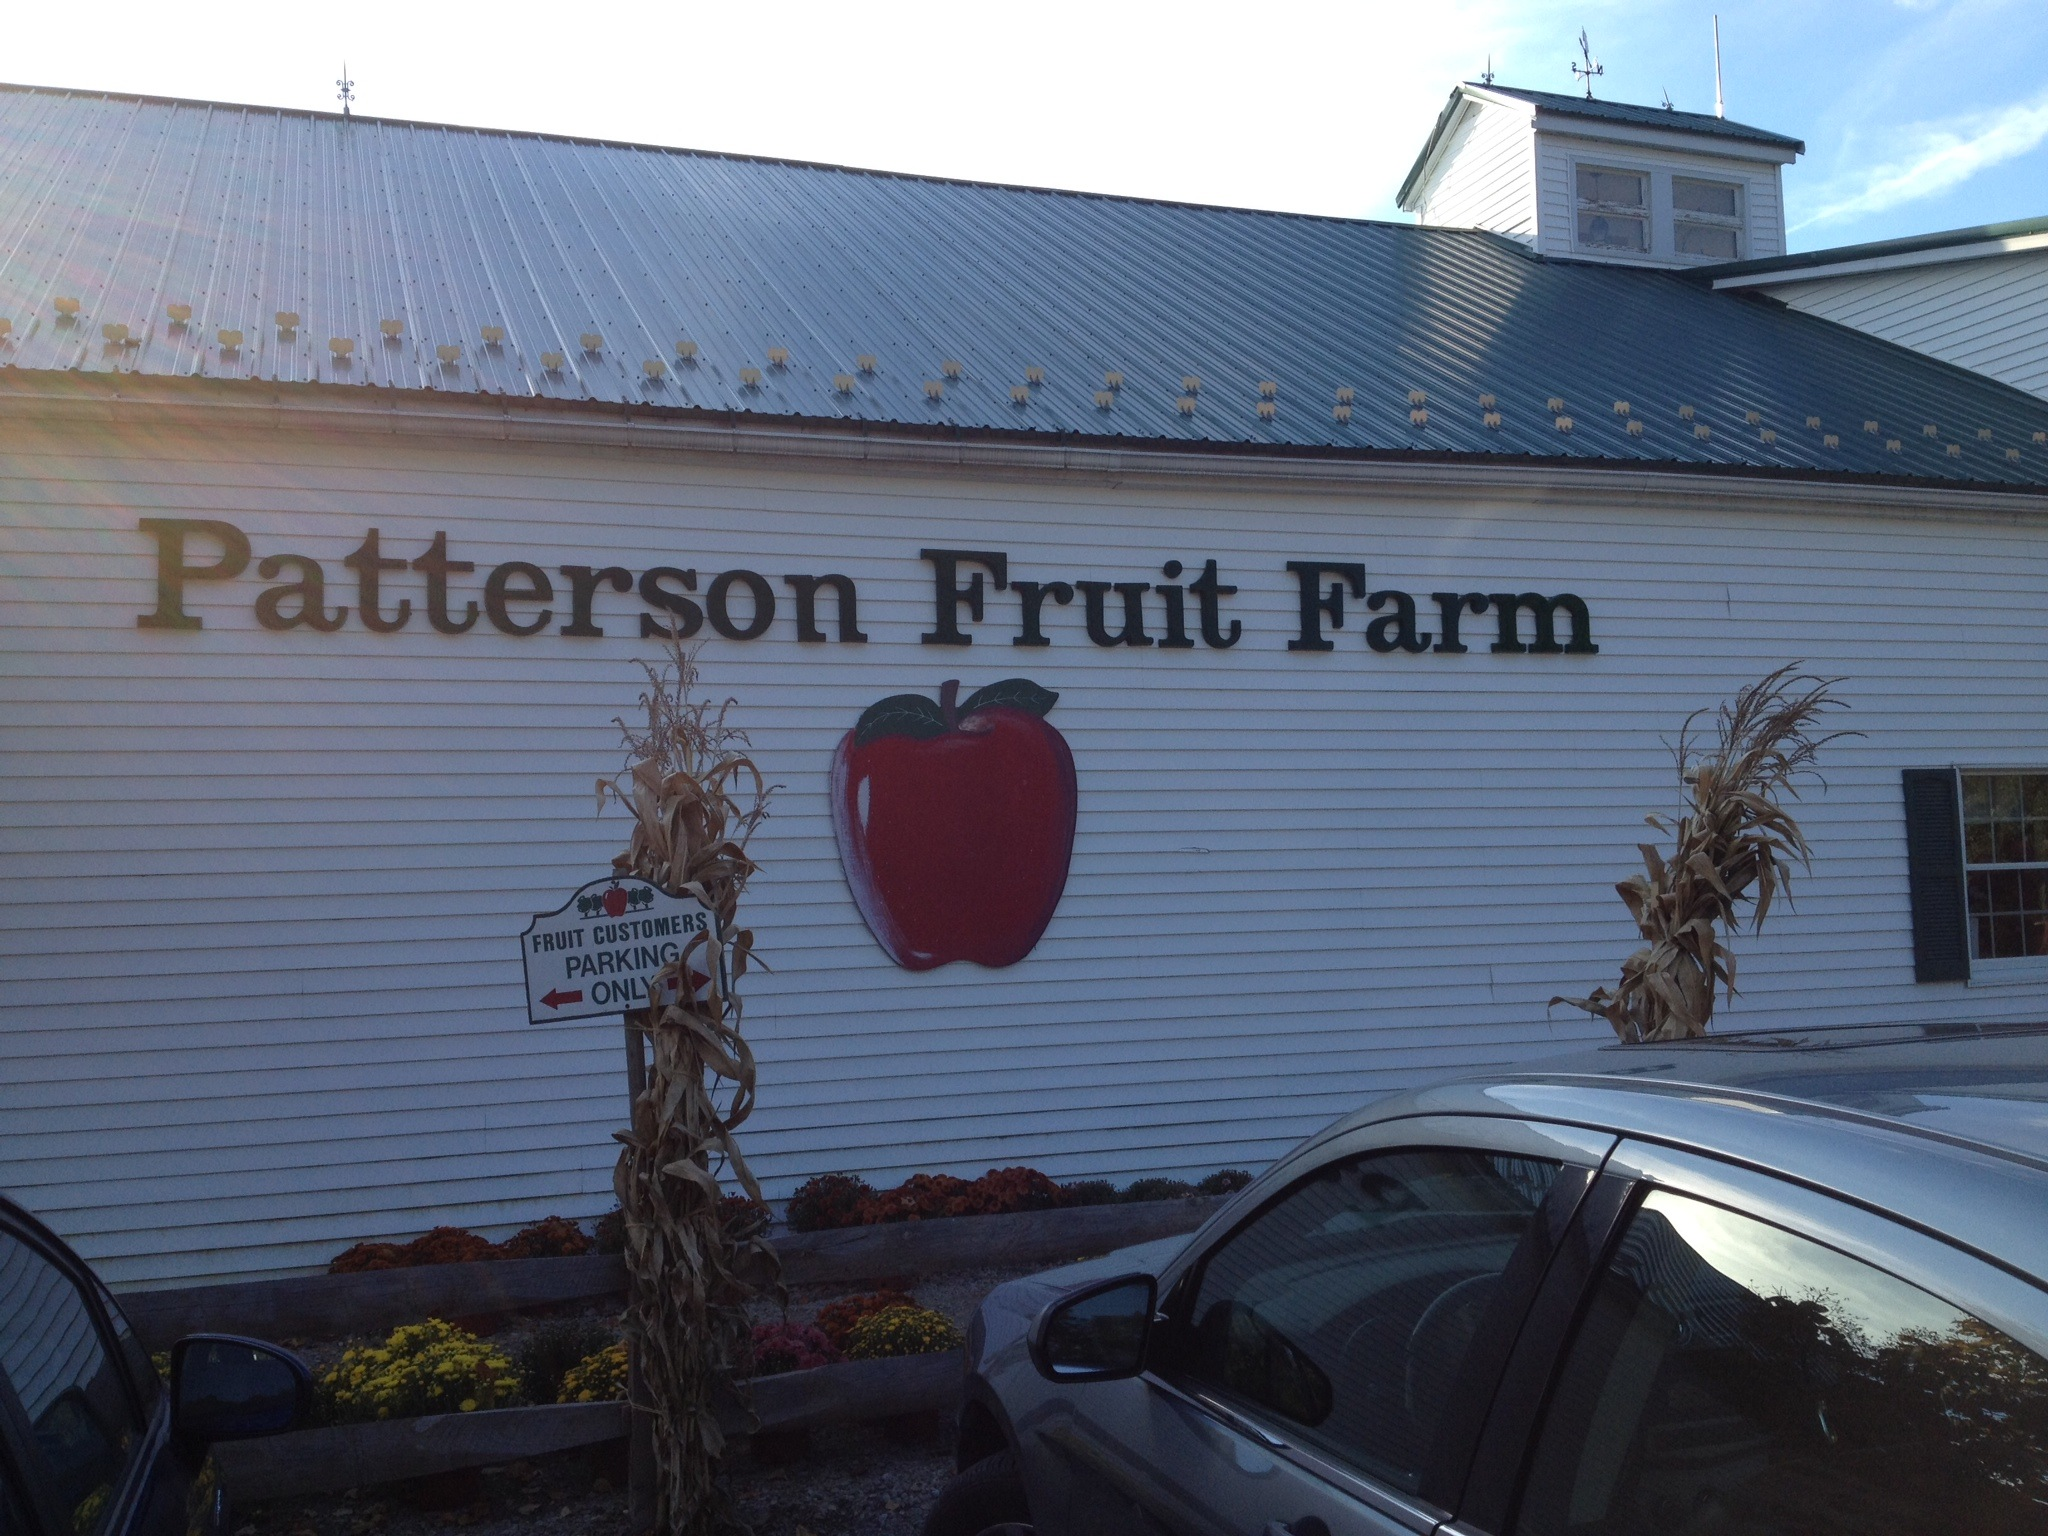 Patterson Fruit Farm – Farming Is Their Way Of Life